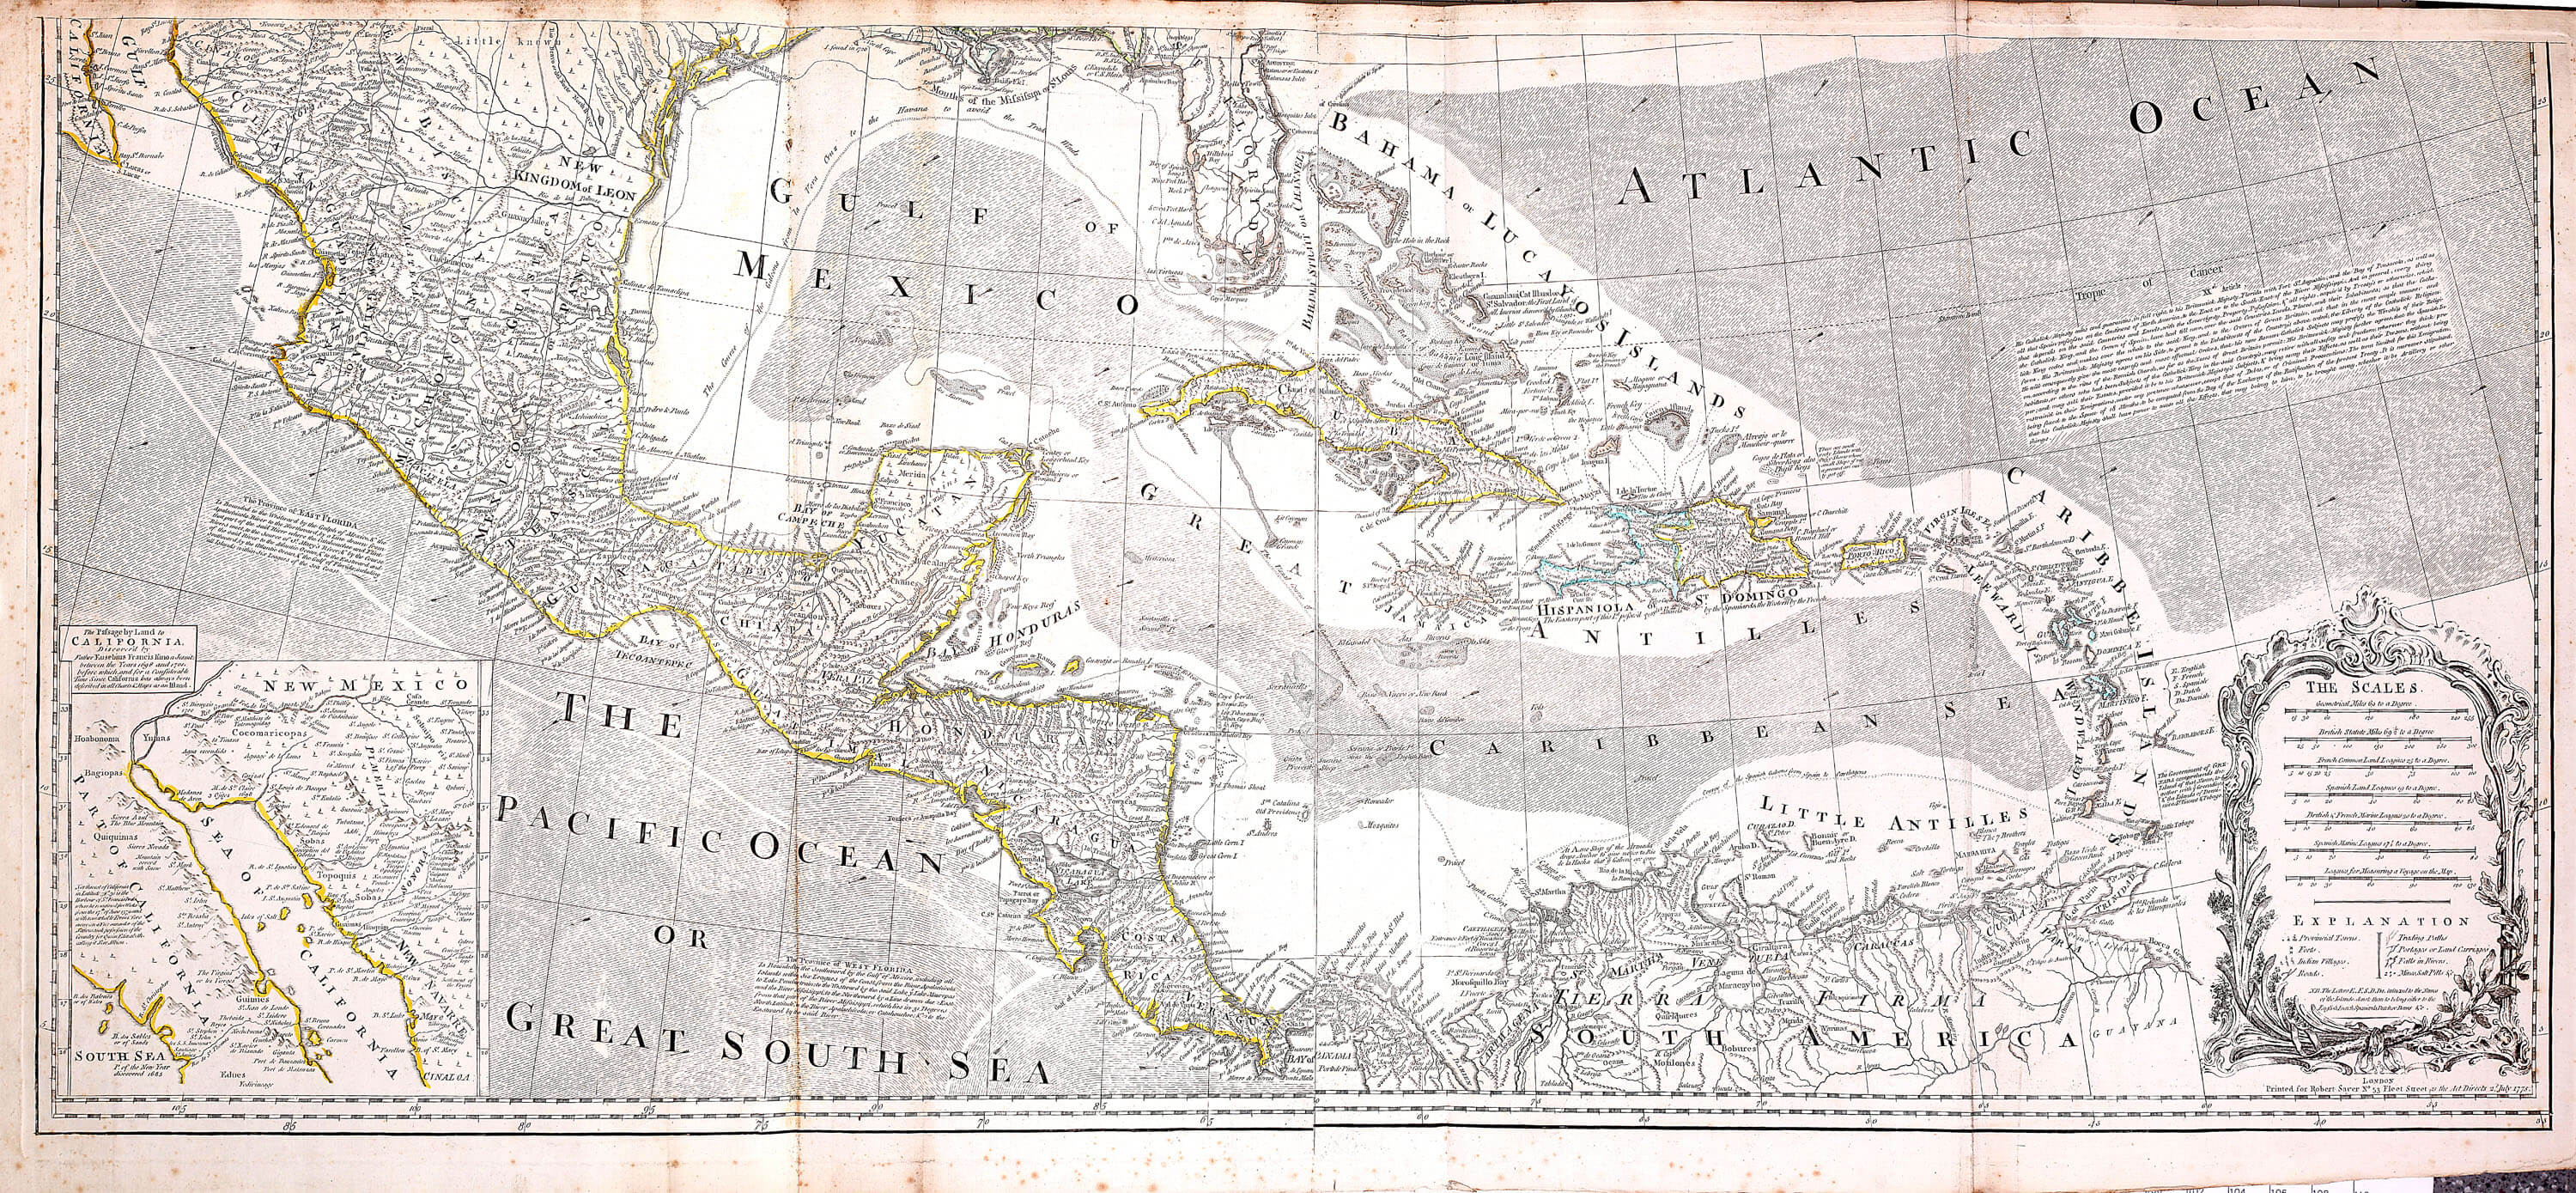 Atlas Of North America Thomas Jefferys L Brown Collection - West indies central america 1763